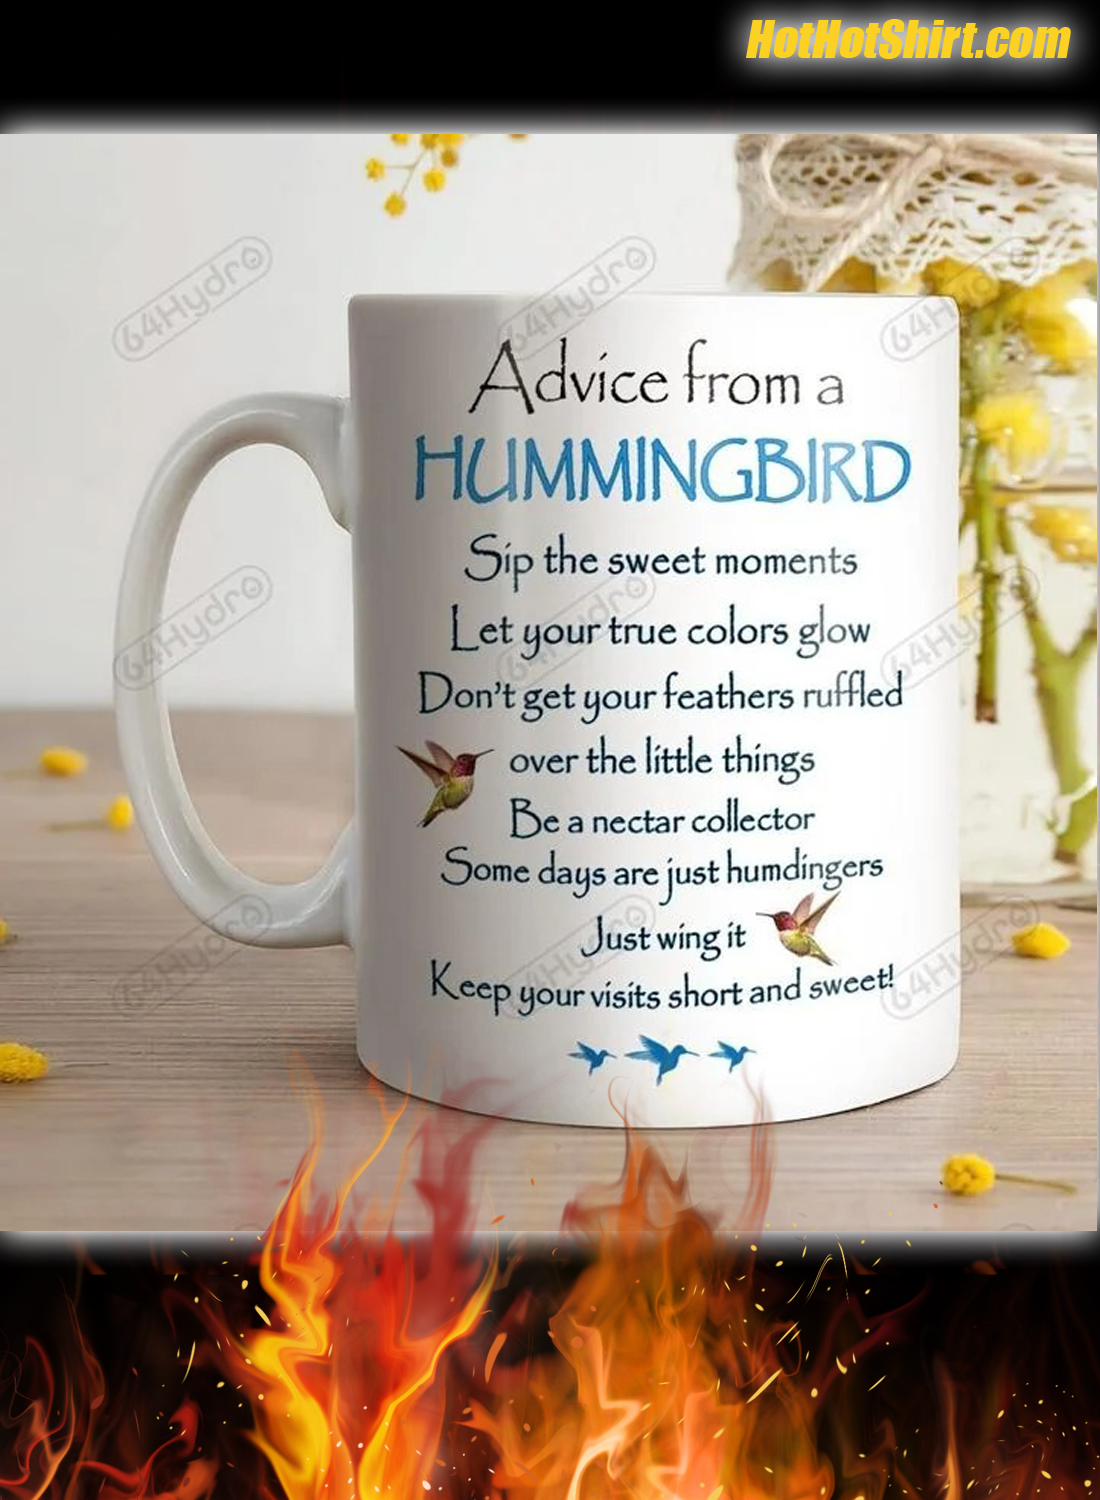 Personalized Name Advice From A Hummingbird Mug 2